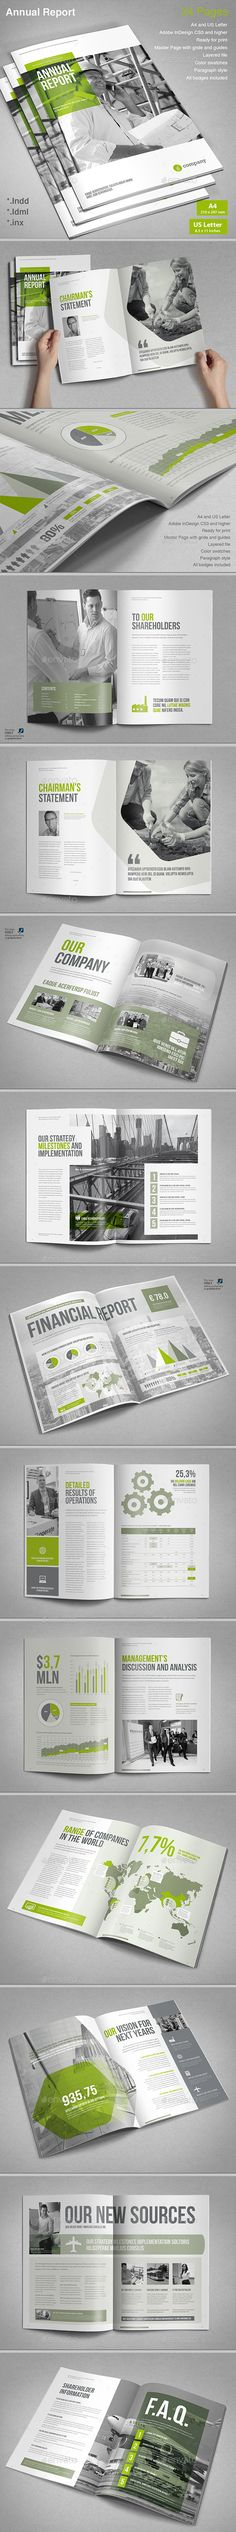 This is a modern and powerful template for a Annual Report.24 pages possibility of creating many unique spreads.